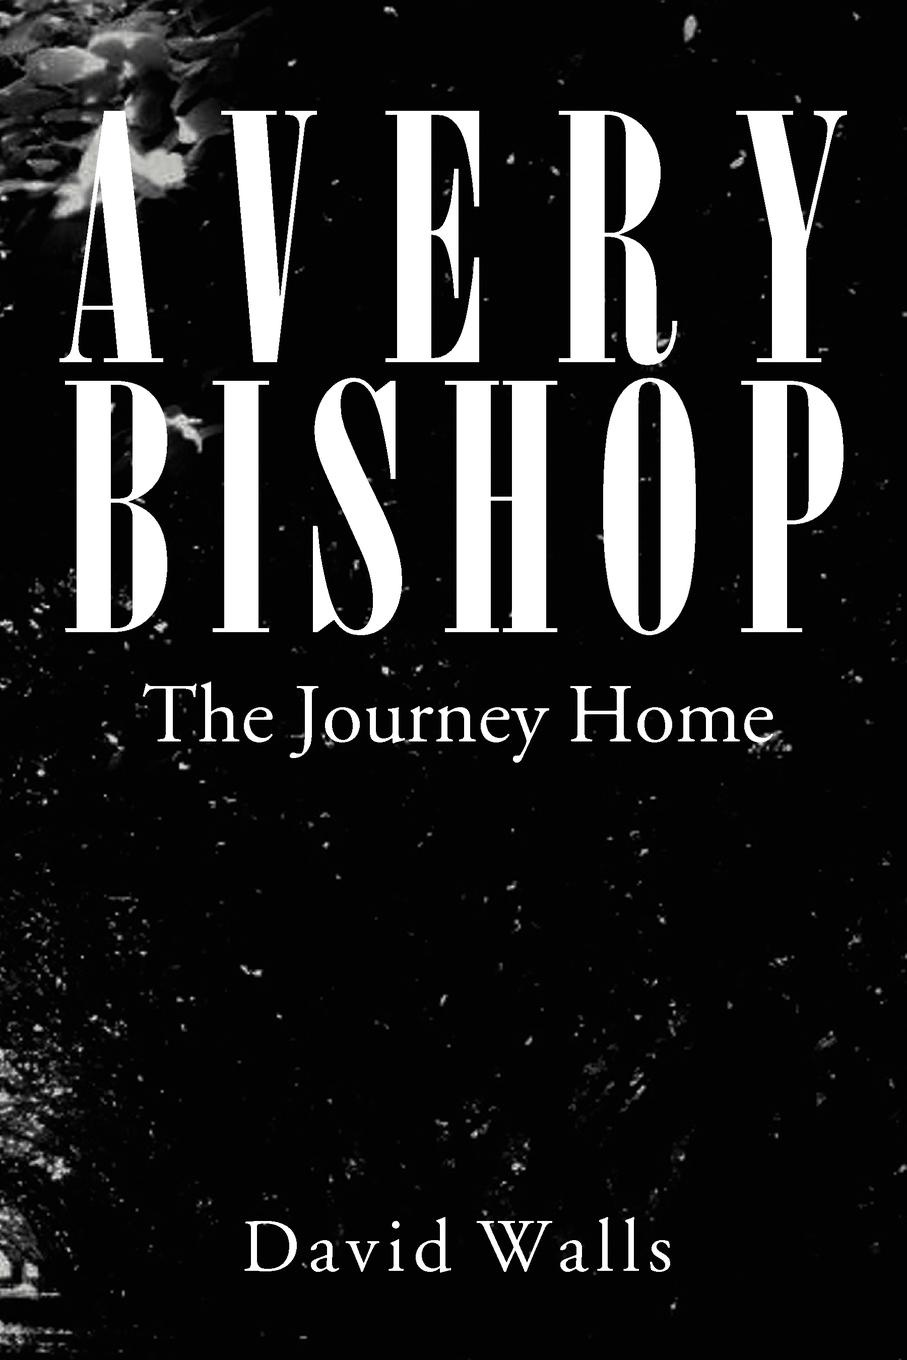 David Walls Avery Bishop. The Journey Home a journey home